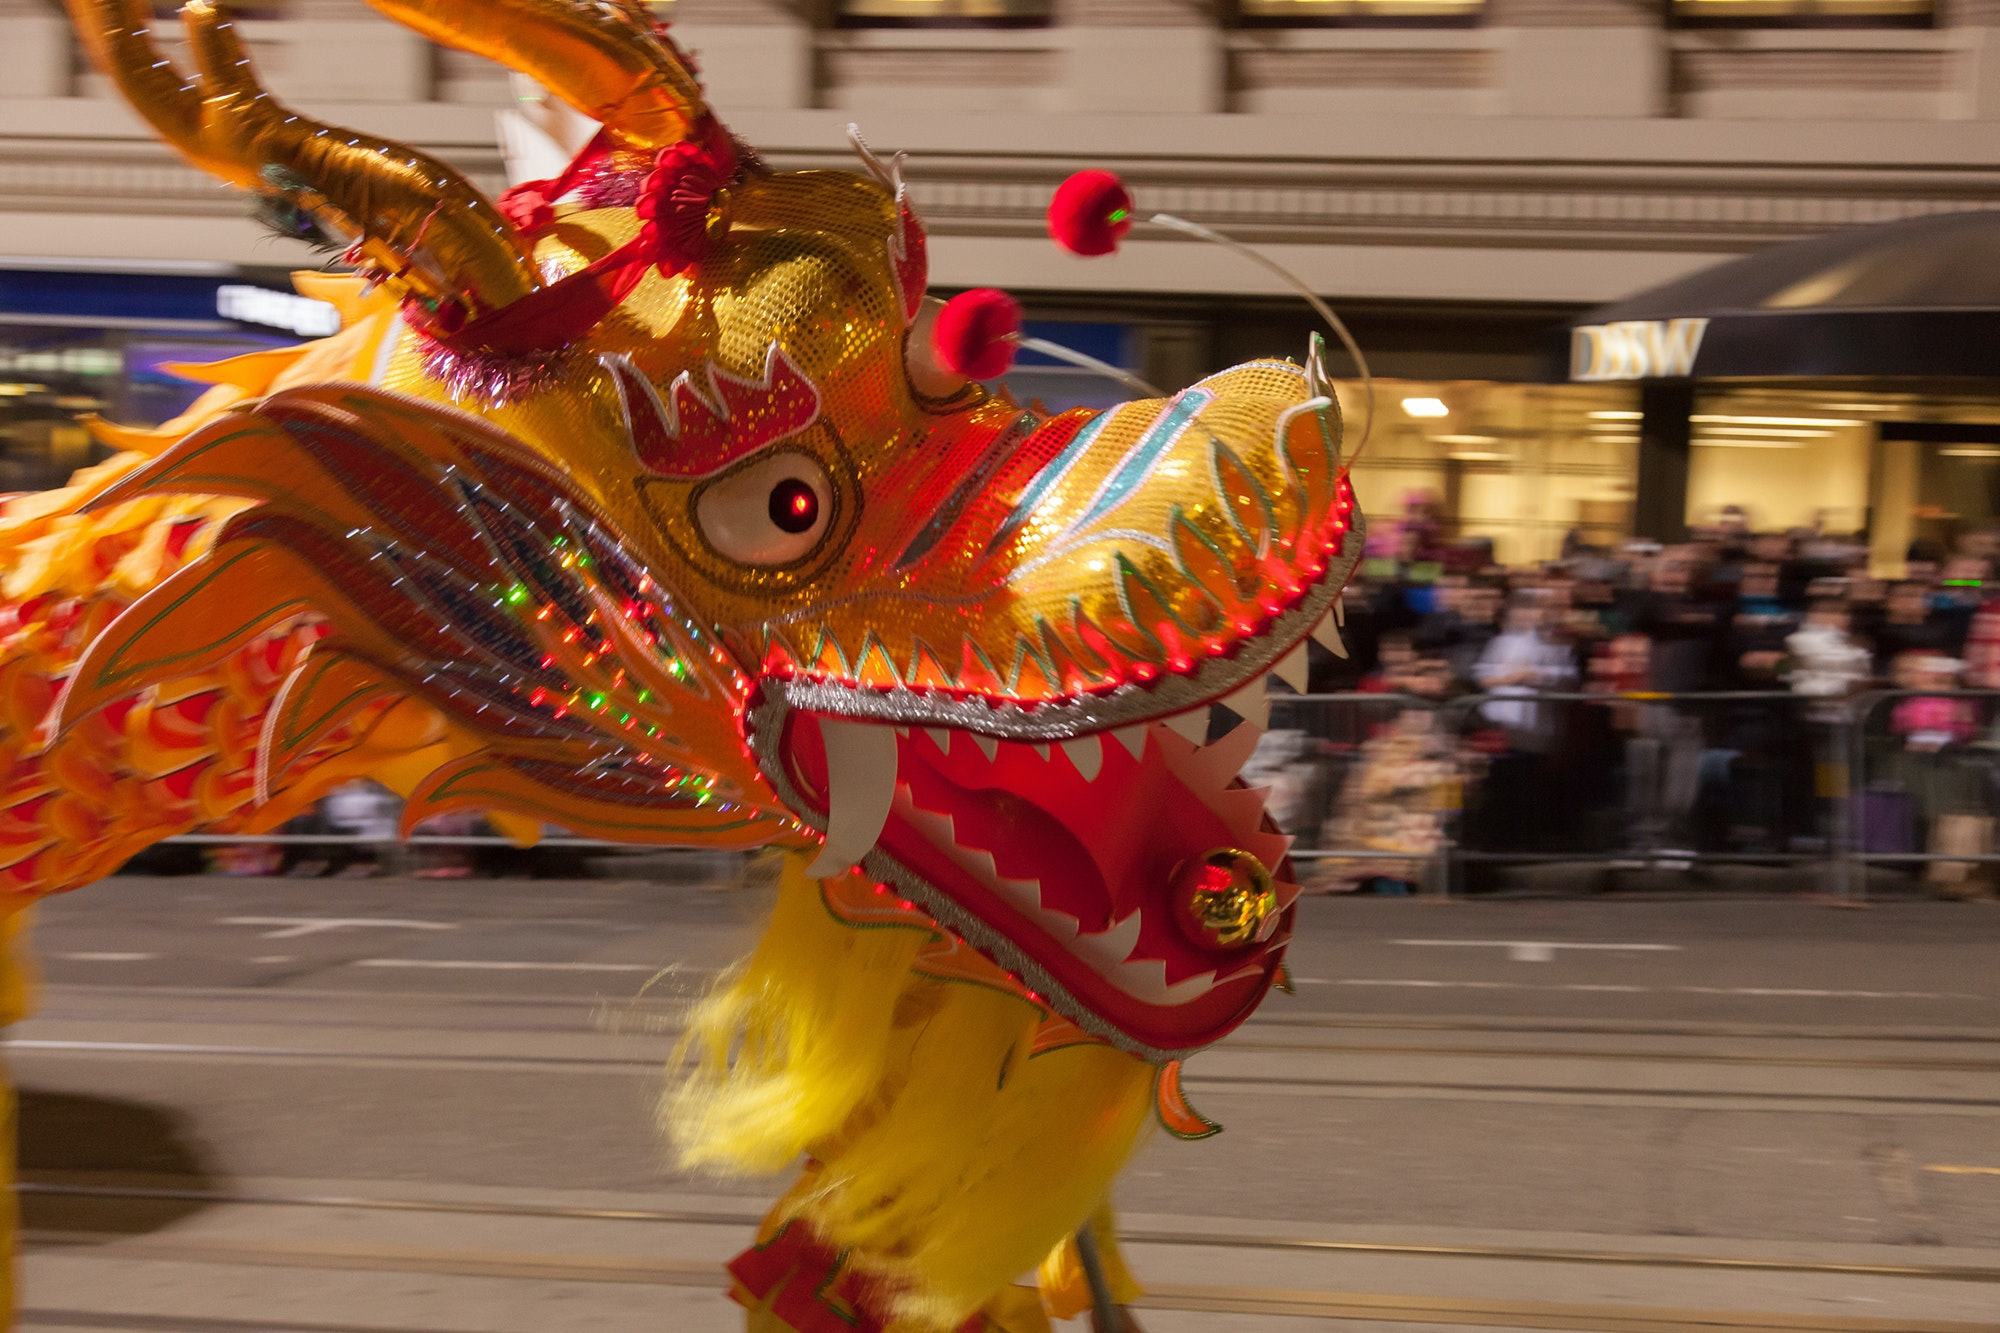 The Chinese New Year Parade takes place in San Francisco on February 23 this year.